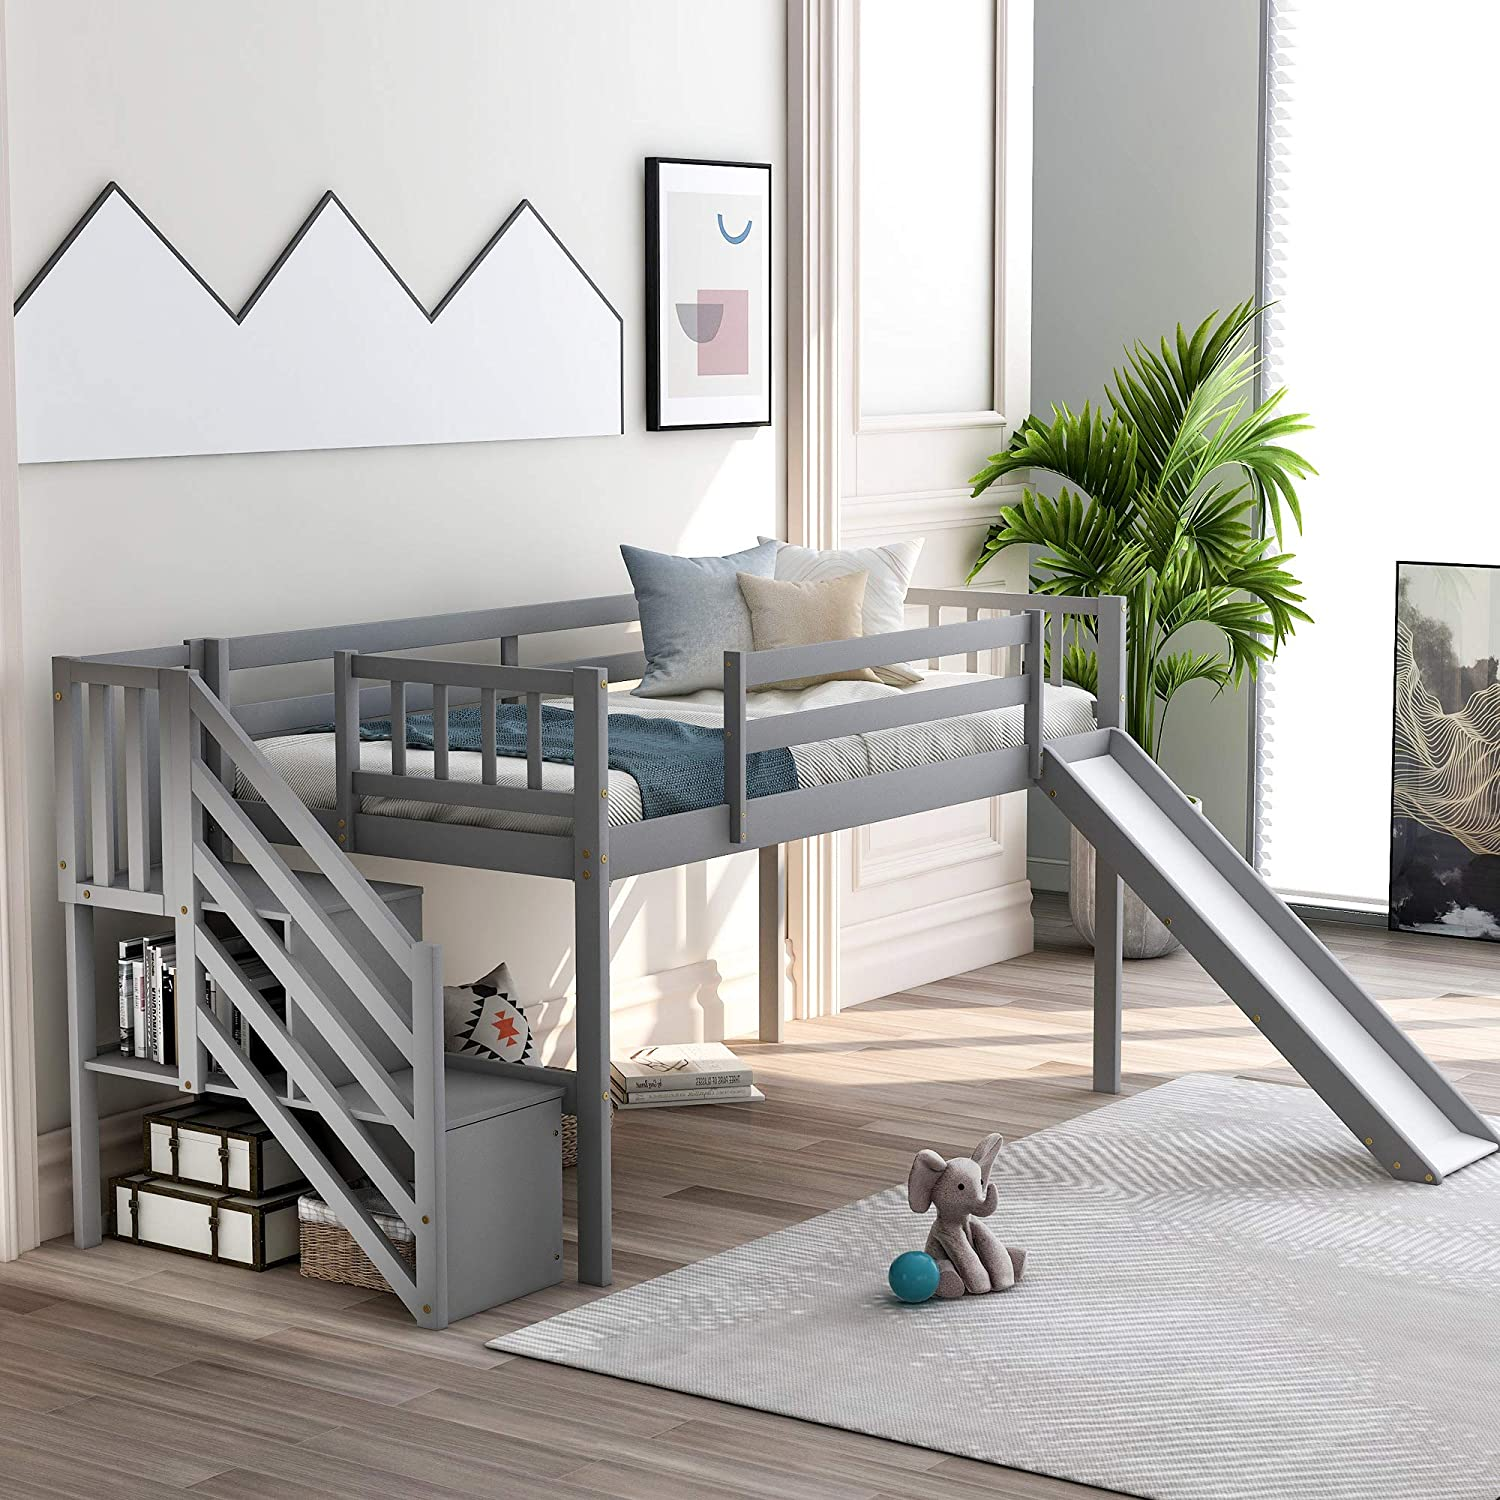 Twin Low Loft Bed With Stairs And Slide For Kids Baysitone Wood Twin Size Low Loft Bed Frame With Staircase Storage And Guardrails Easy To Assemble No Box Spring Required Gray Kitchen